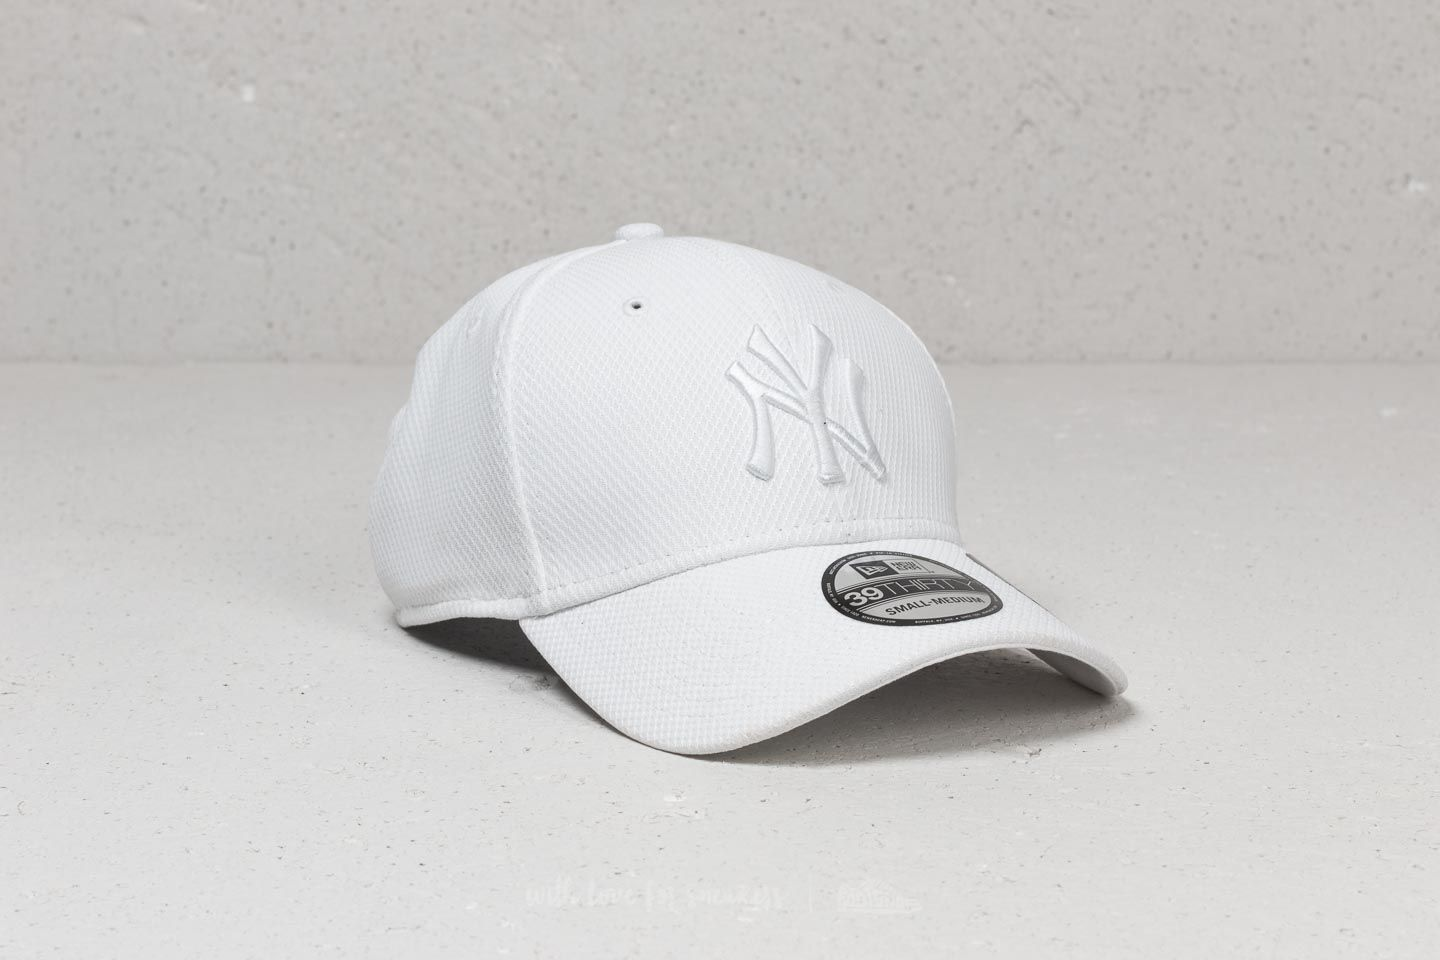 huge selection of ee44d d2f8e ... czech new era 39thirty mld diamond era new york yankees cap white at a  great price